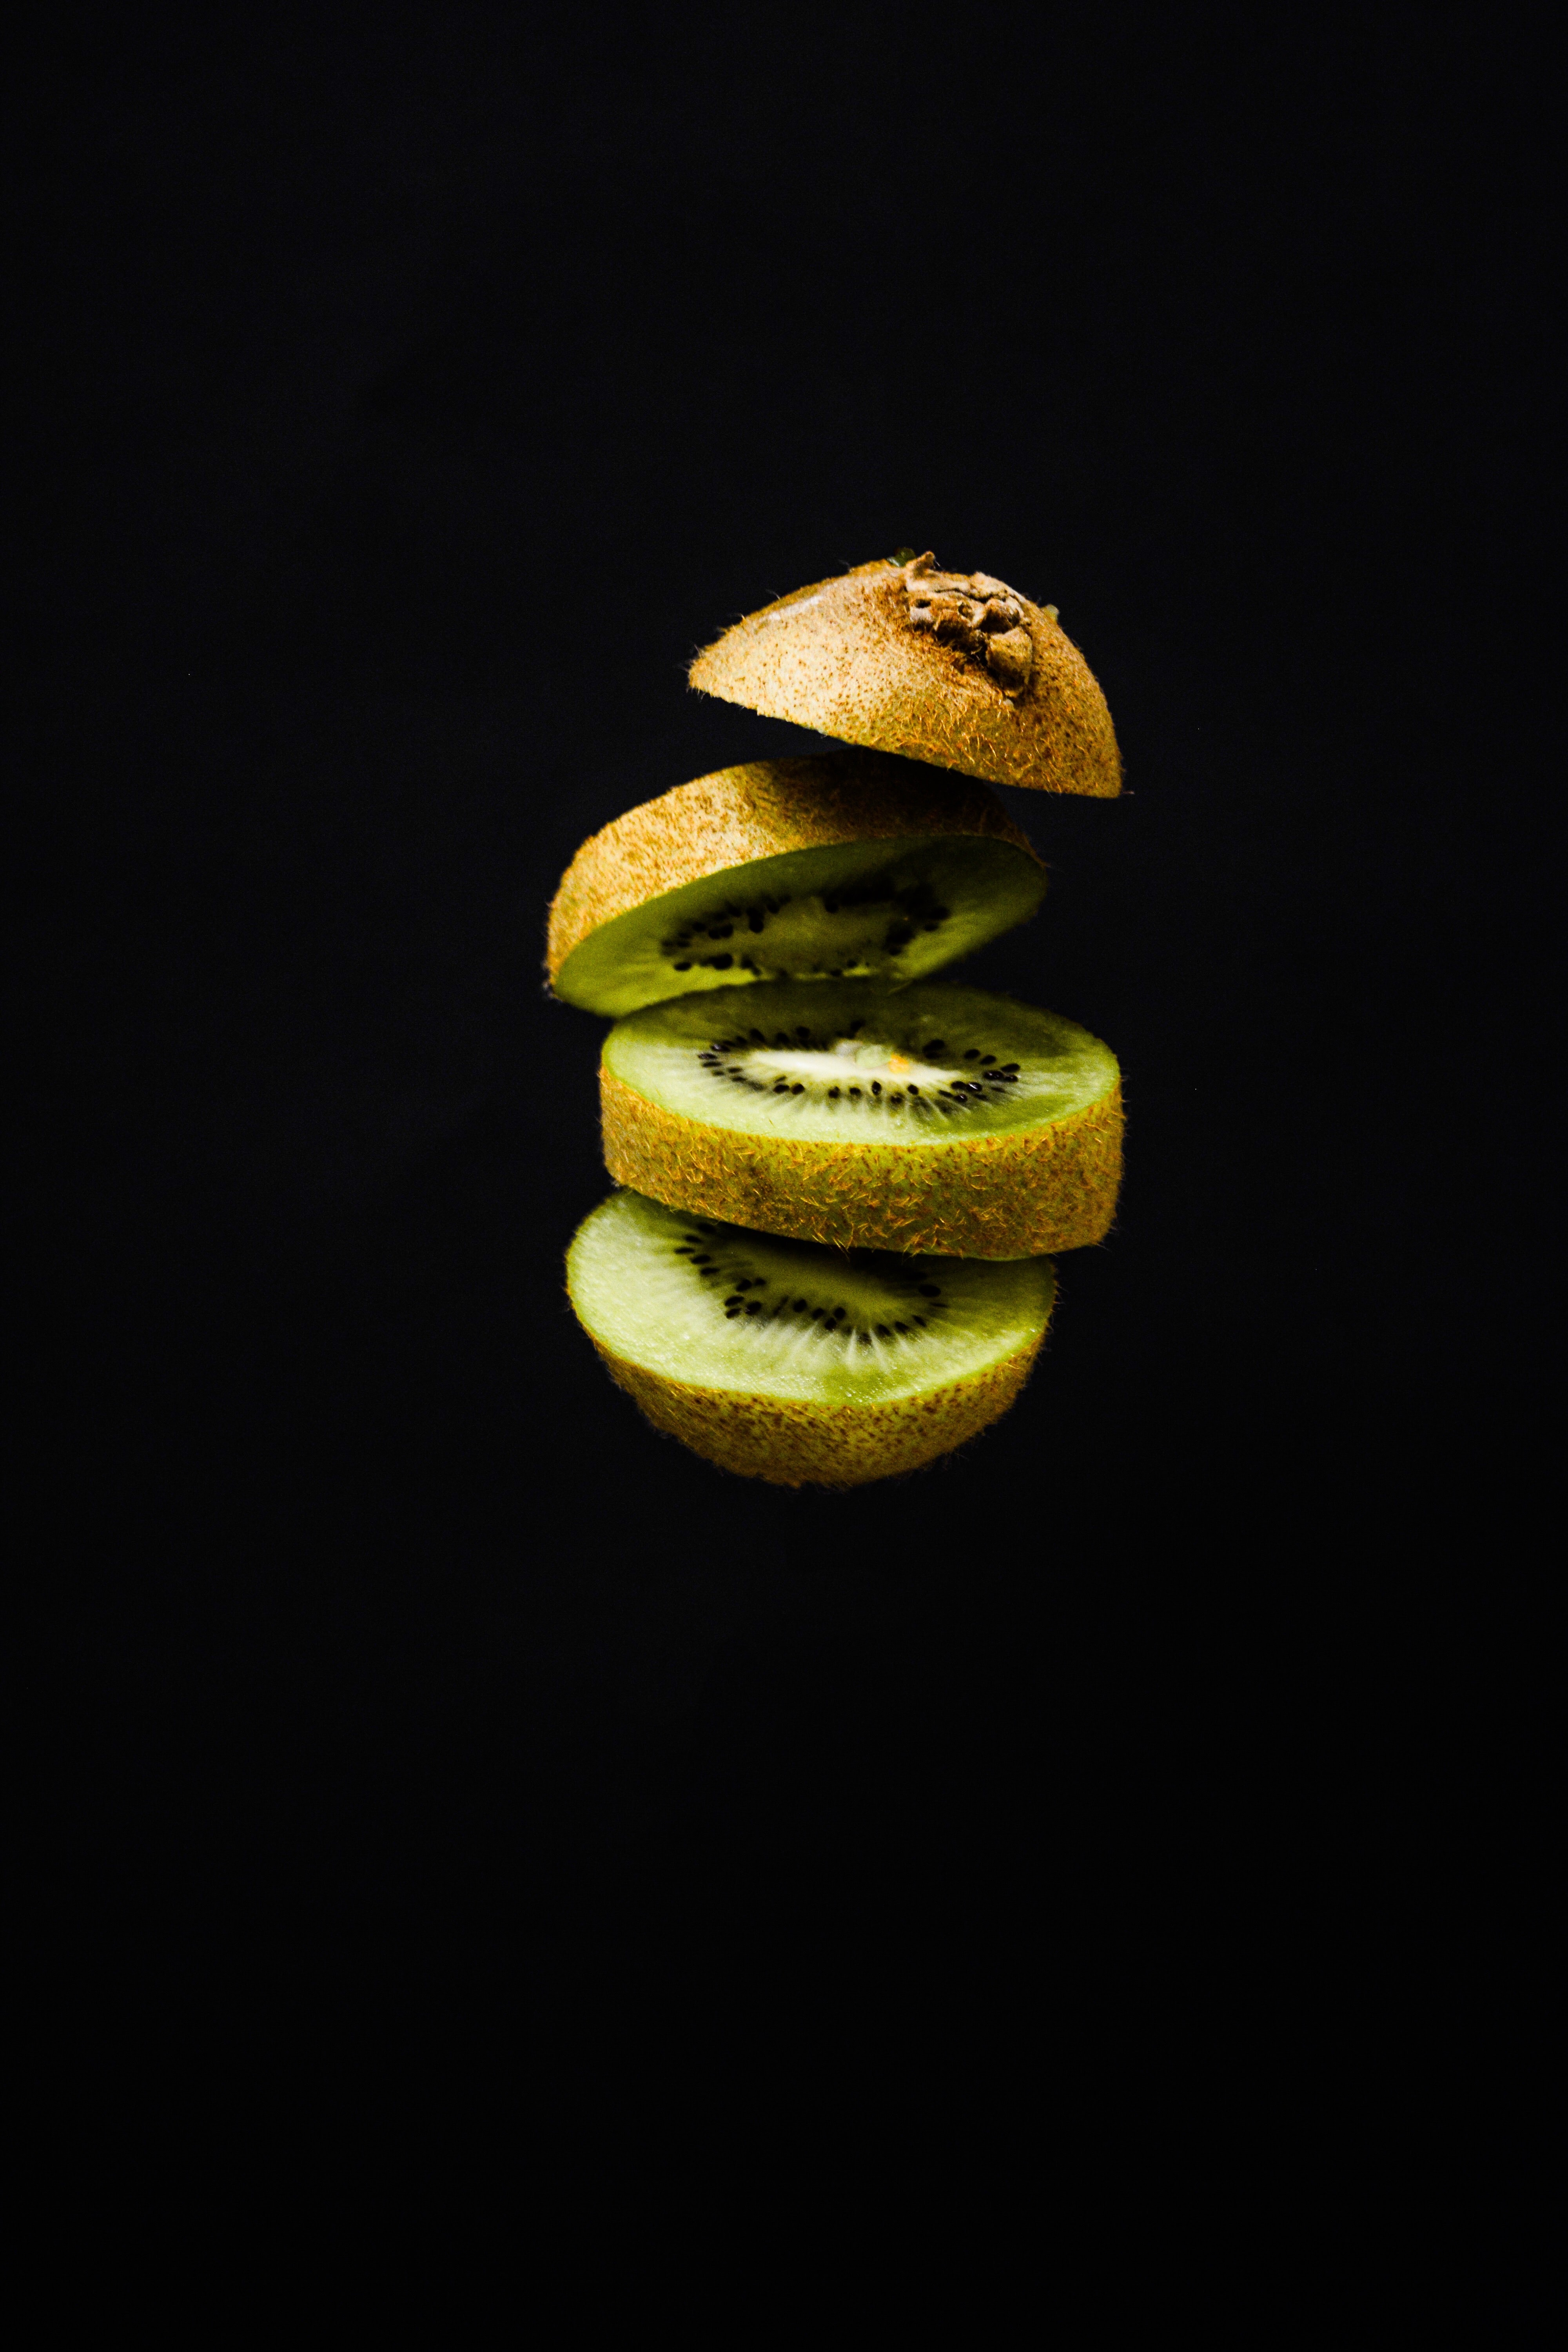 69804 download wallpaper Food, Kiwi, Fruit, Black Background screensavers and pictures for free